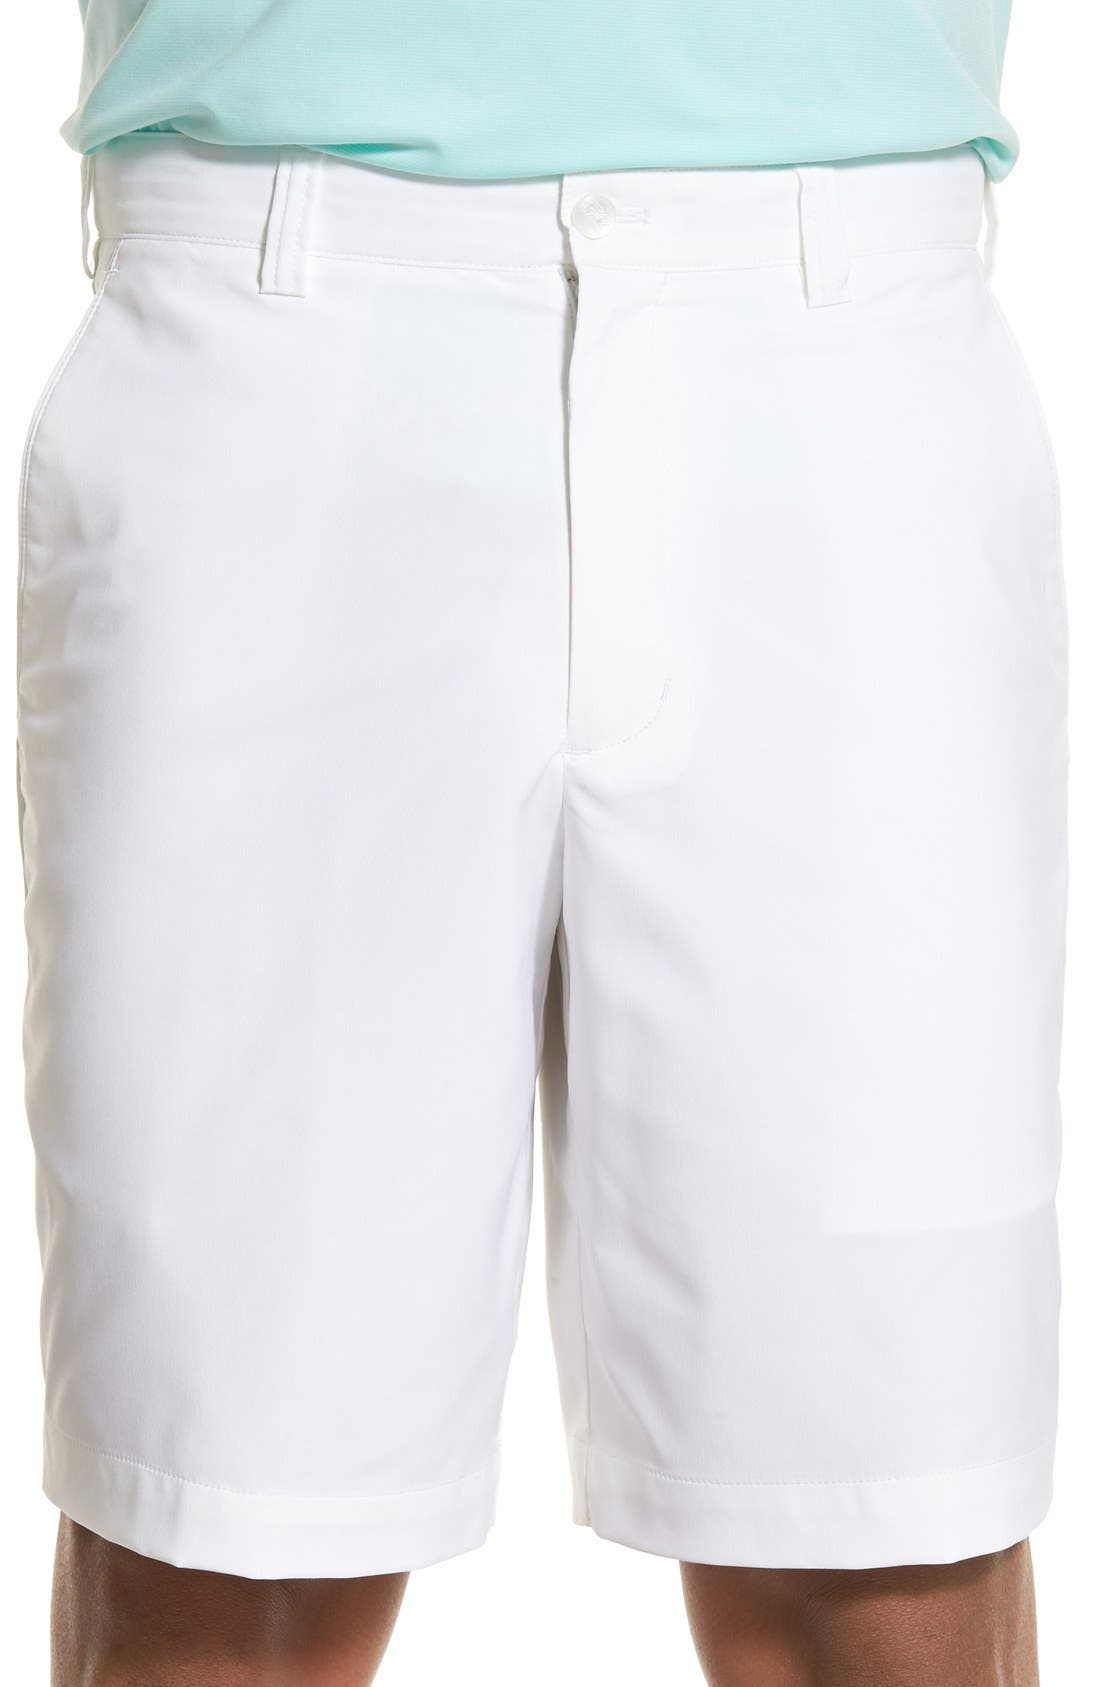 CUTTER & BUCK 'Bainbridge' DryTec Flat Front Shorts